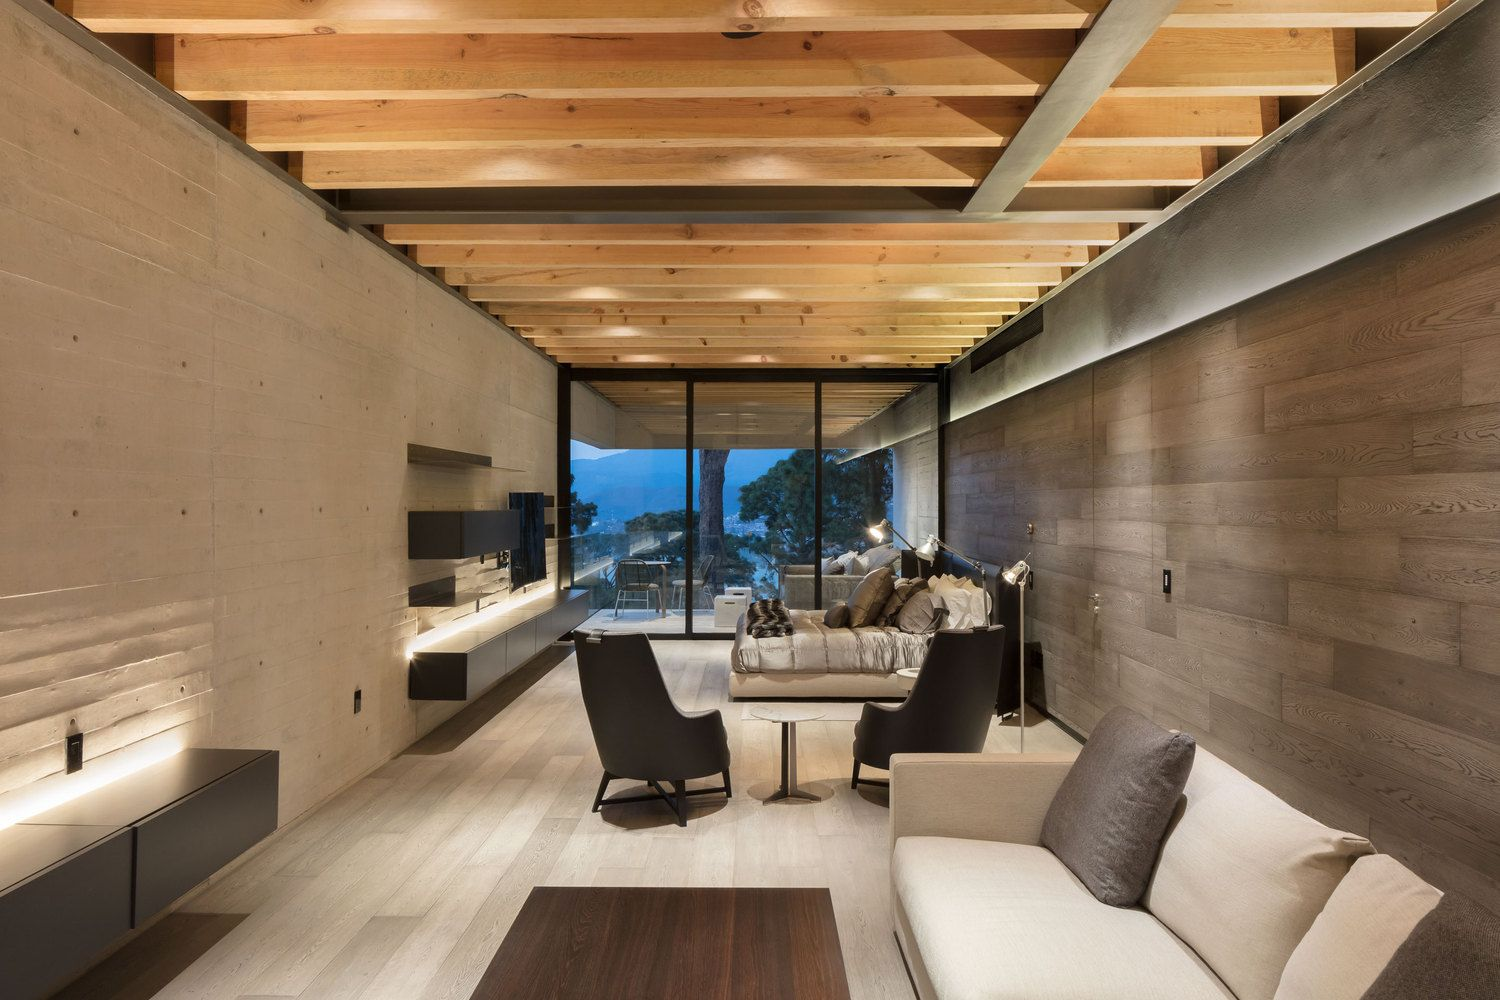 Gallery of Lake View House grupoarquitectura